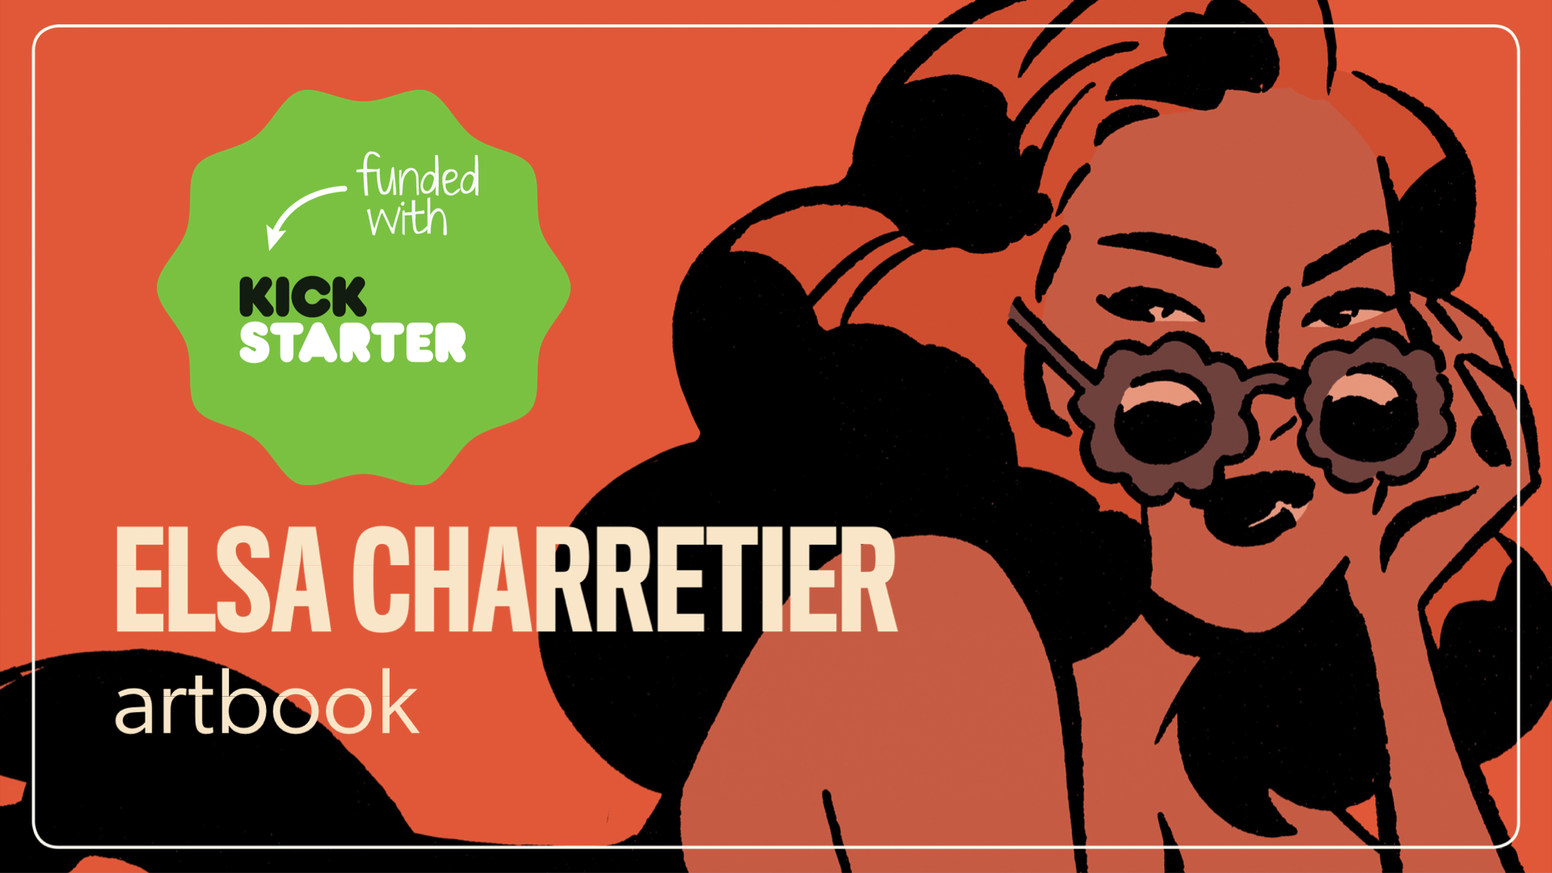 The artbook is now available to non-backers on my Etsy store!